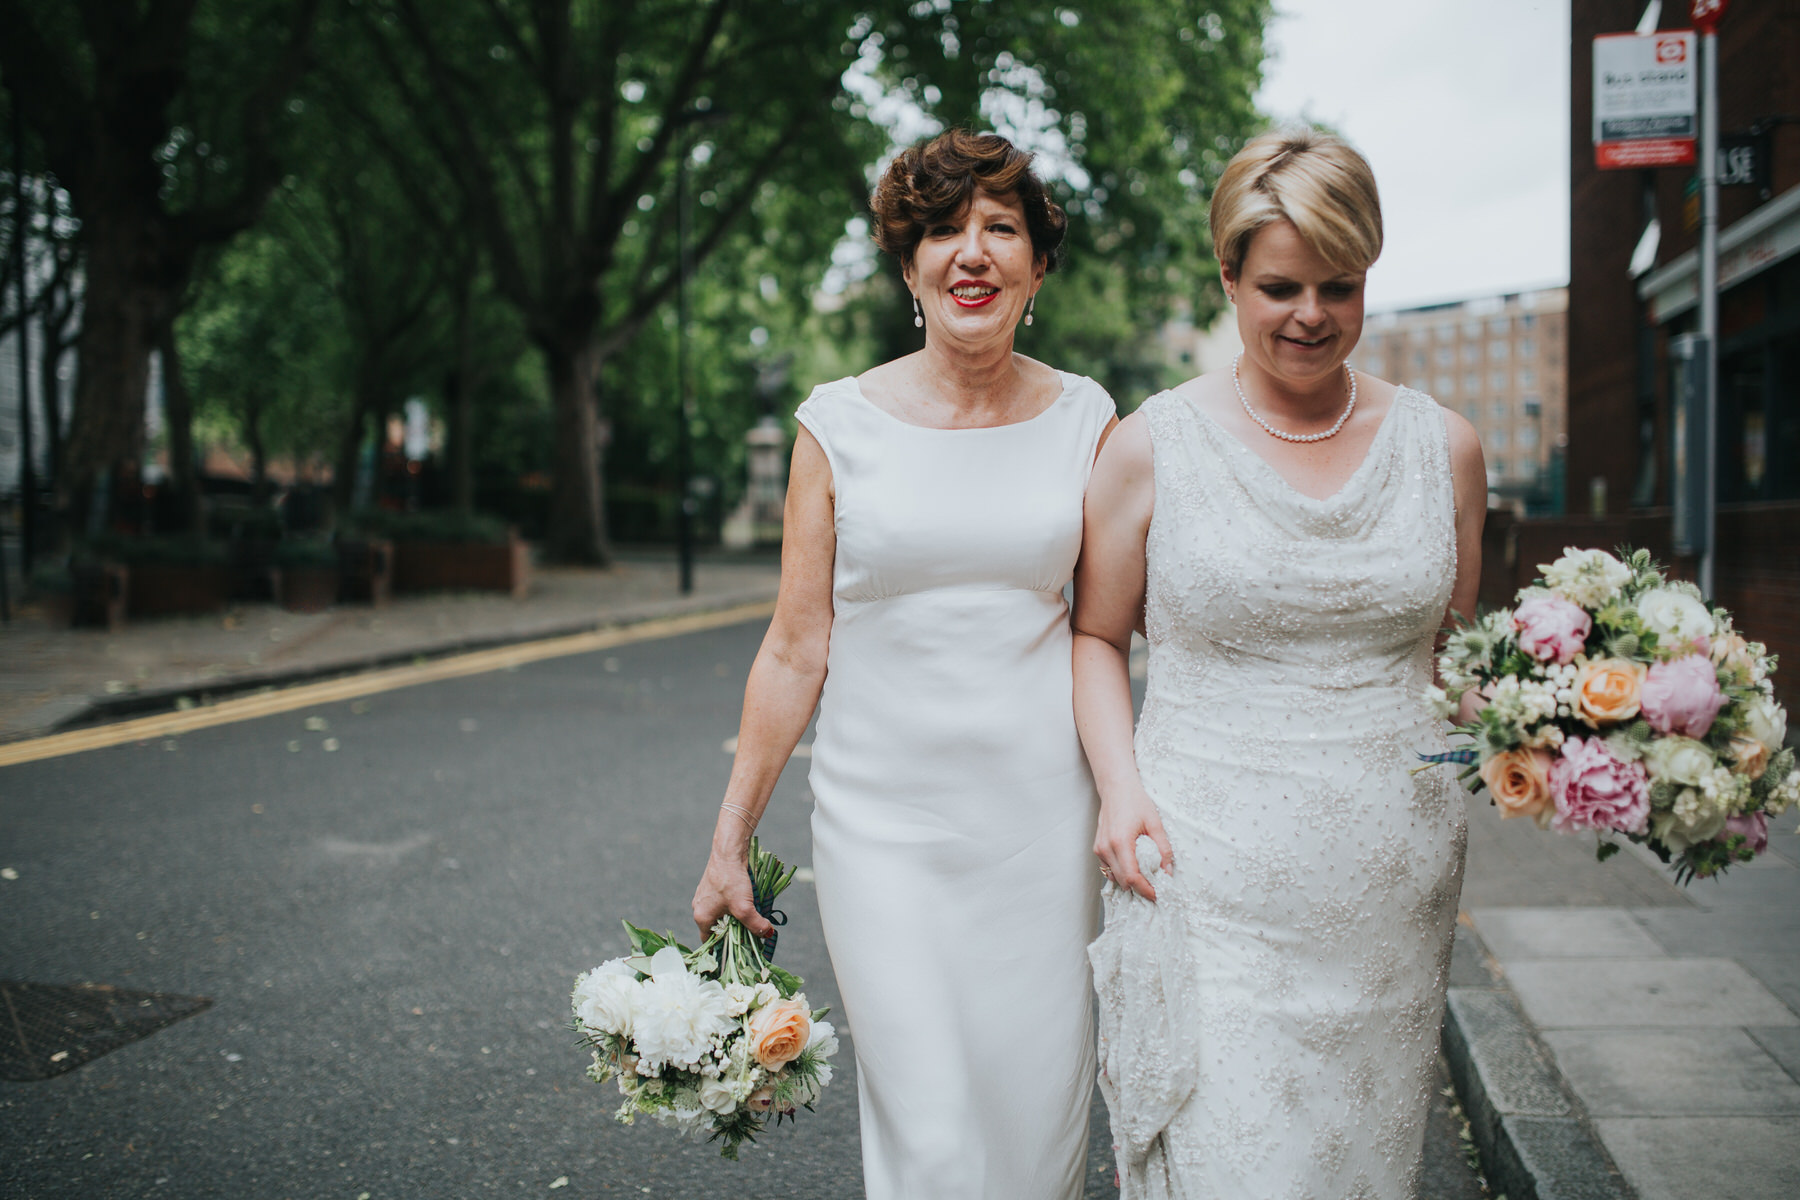 205 two gorgeous brides just married London alternative photos.jpg